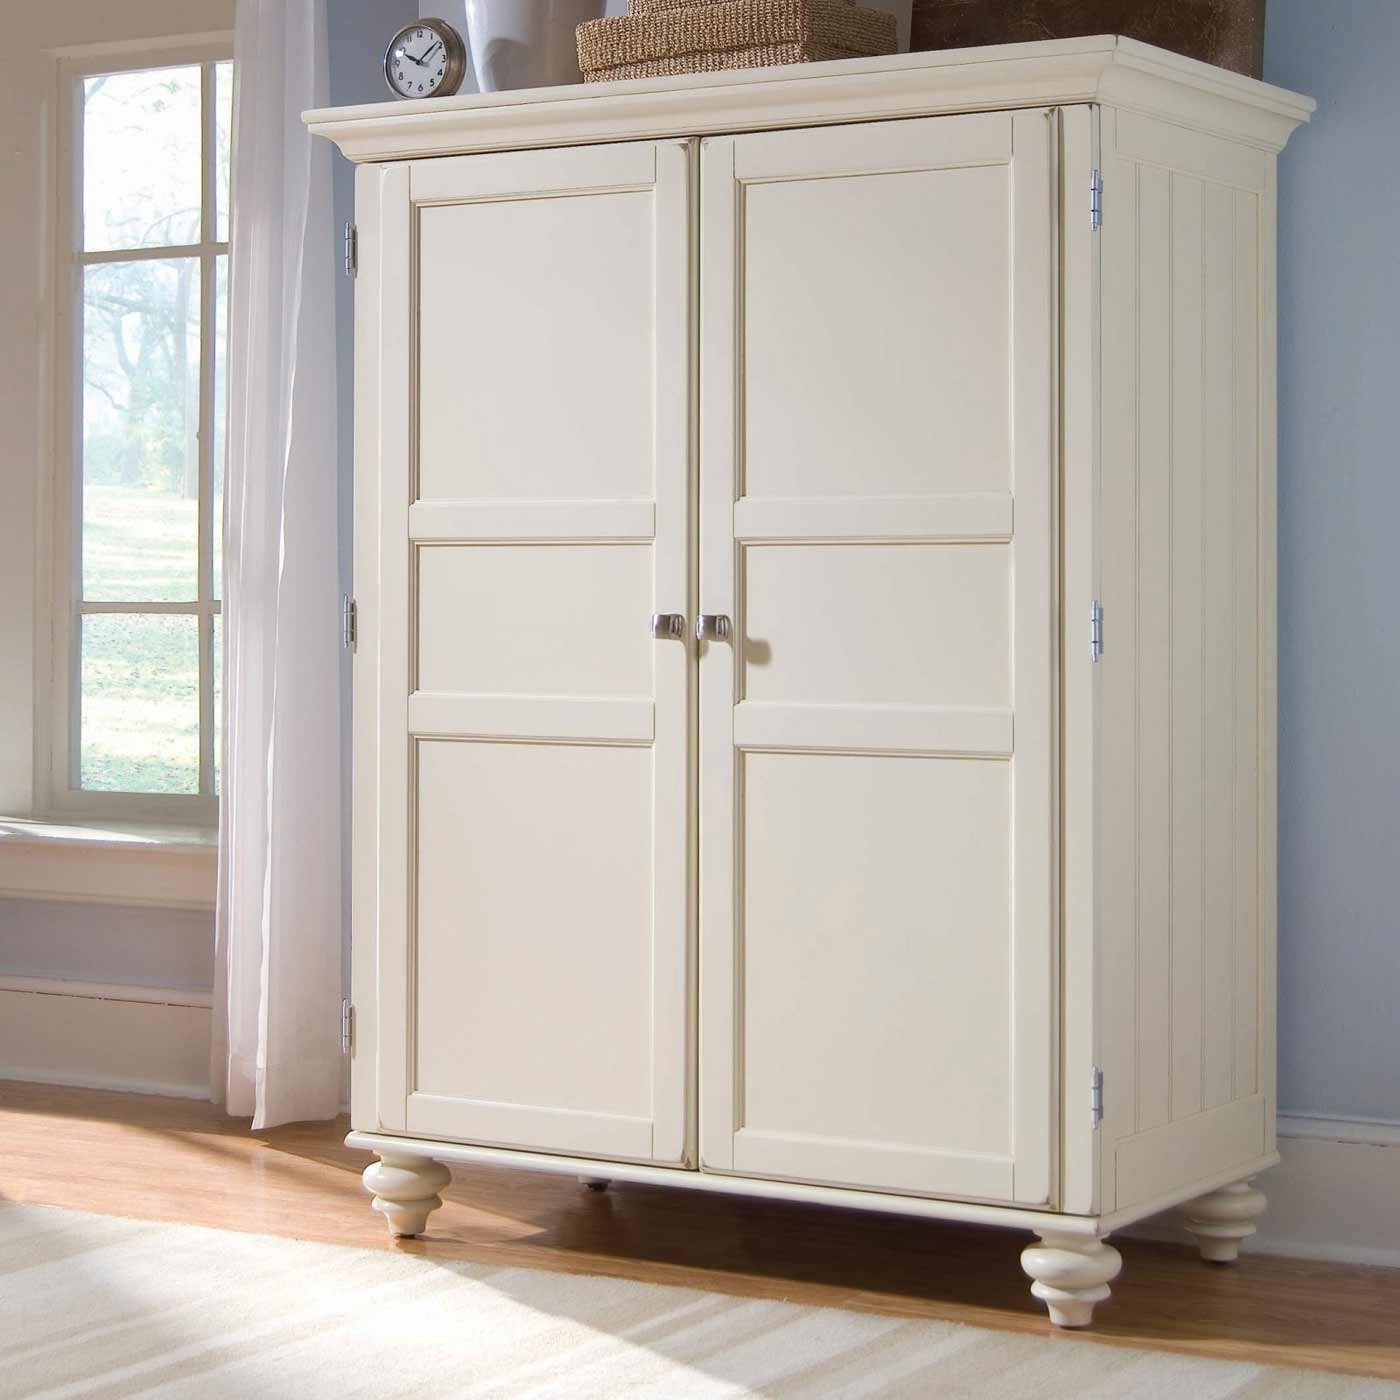 Furniture Fancy Wardrobe Armoire For Wardrobe Organizer Idea Within White Wardrobe Armoire (Image 14 of 25)